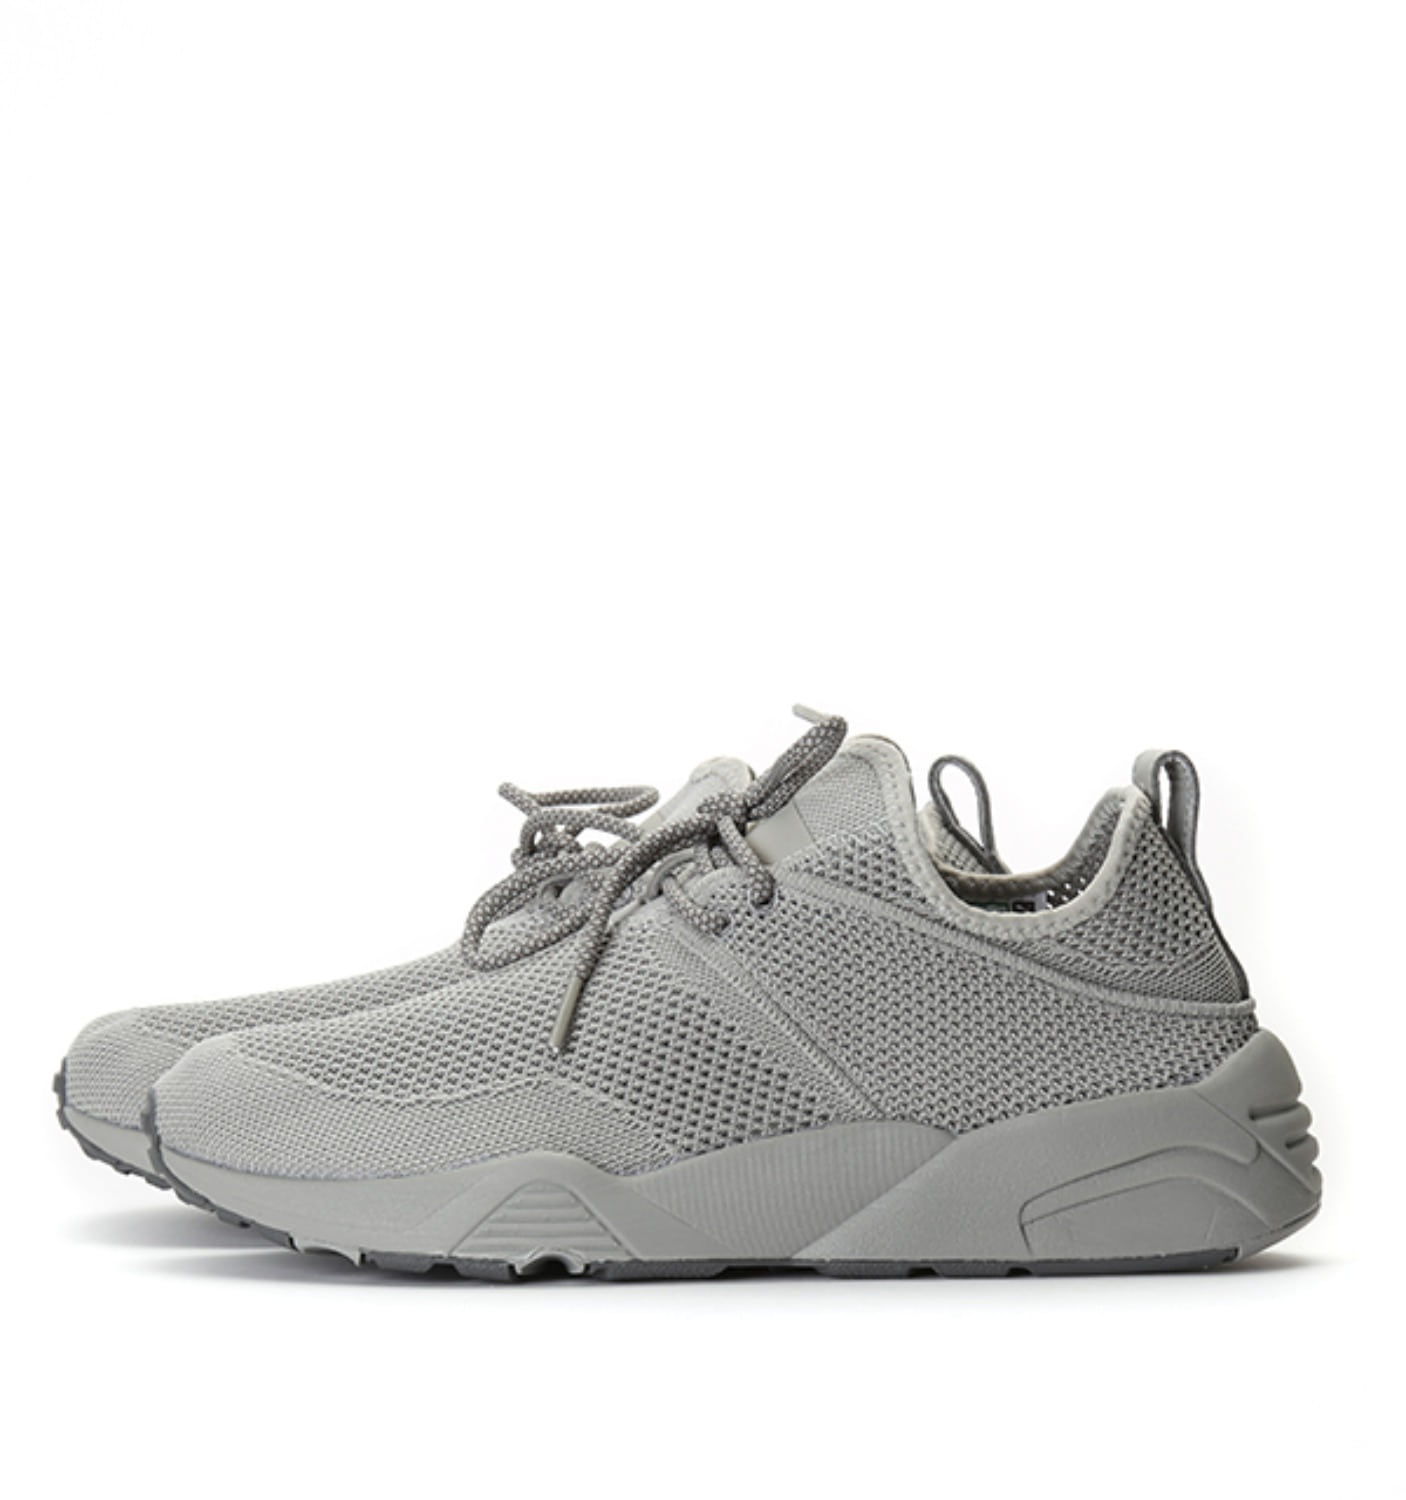 PUMA X STAMPD TRINOMIC WOVEN STEEL GREY(362744)